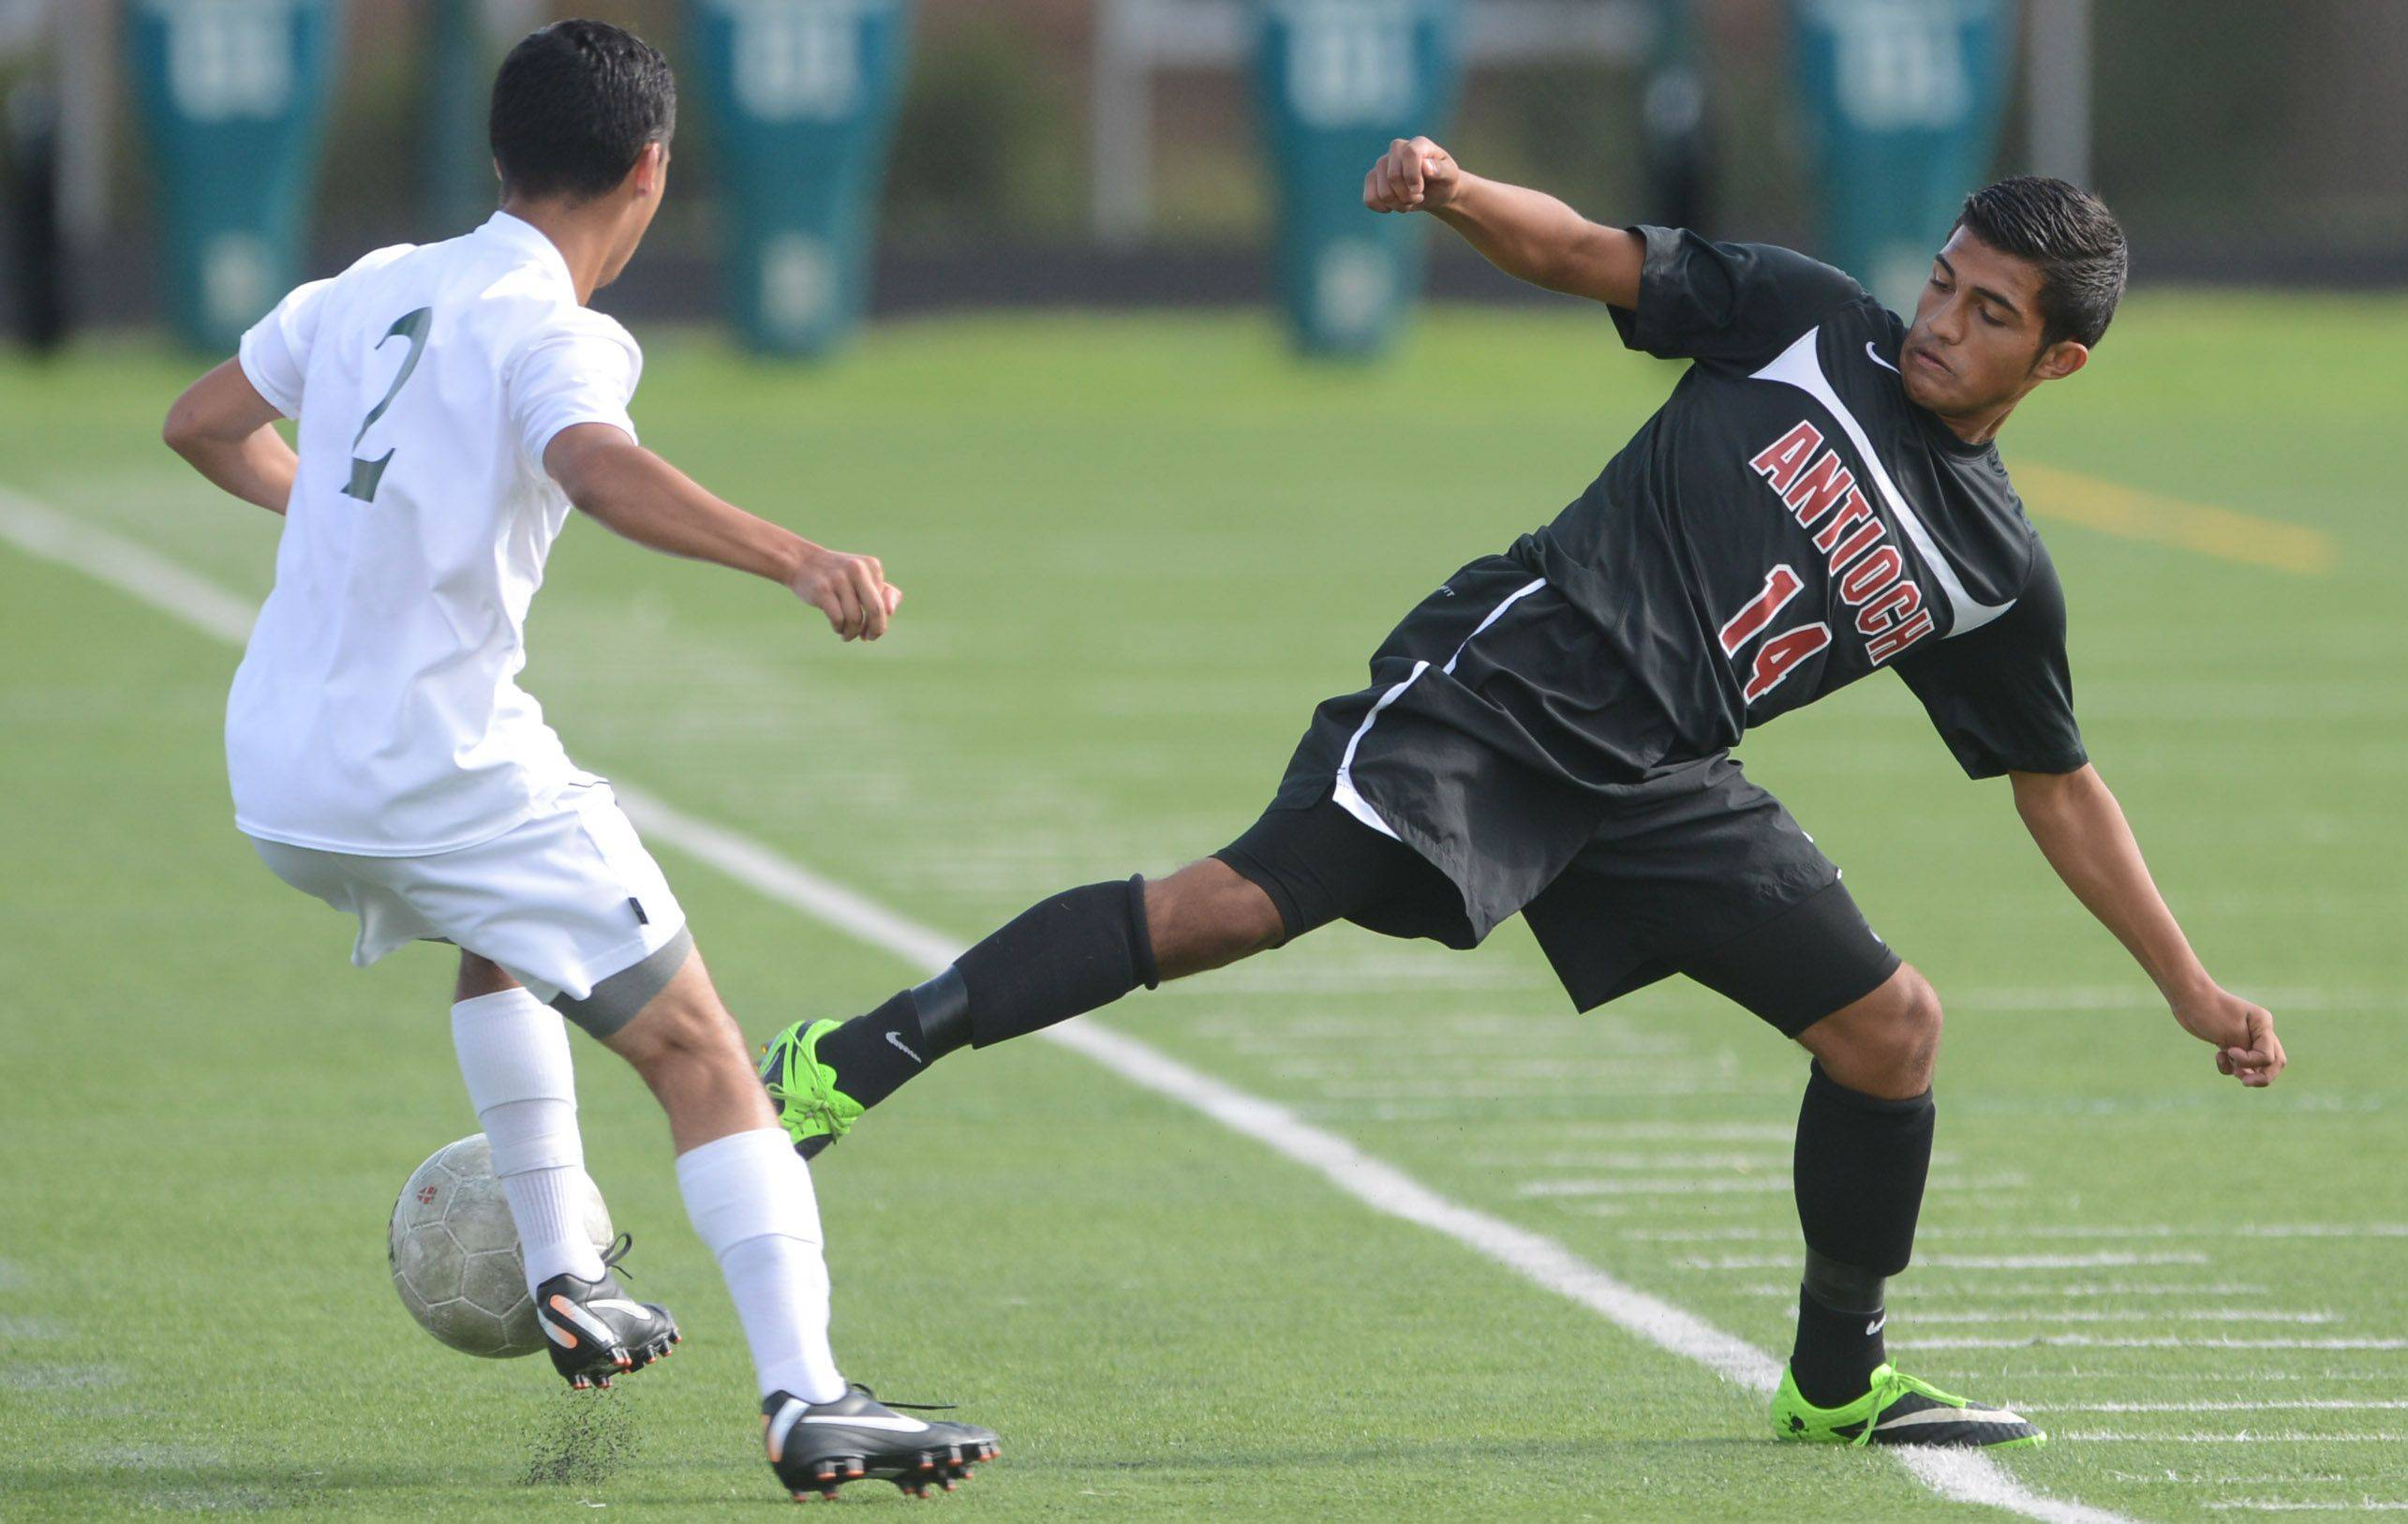 Antioch�s Iven Hernandez, right, tries to disrupt a possession against Grayslake Central�s Anthony Betancourth on Wednesday in Grayslake.